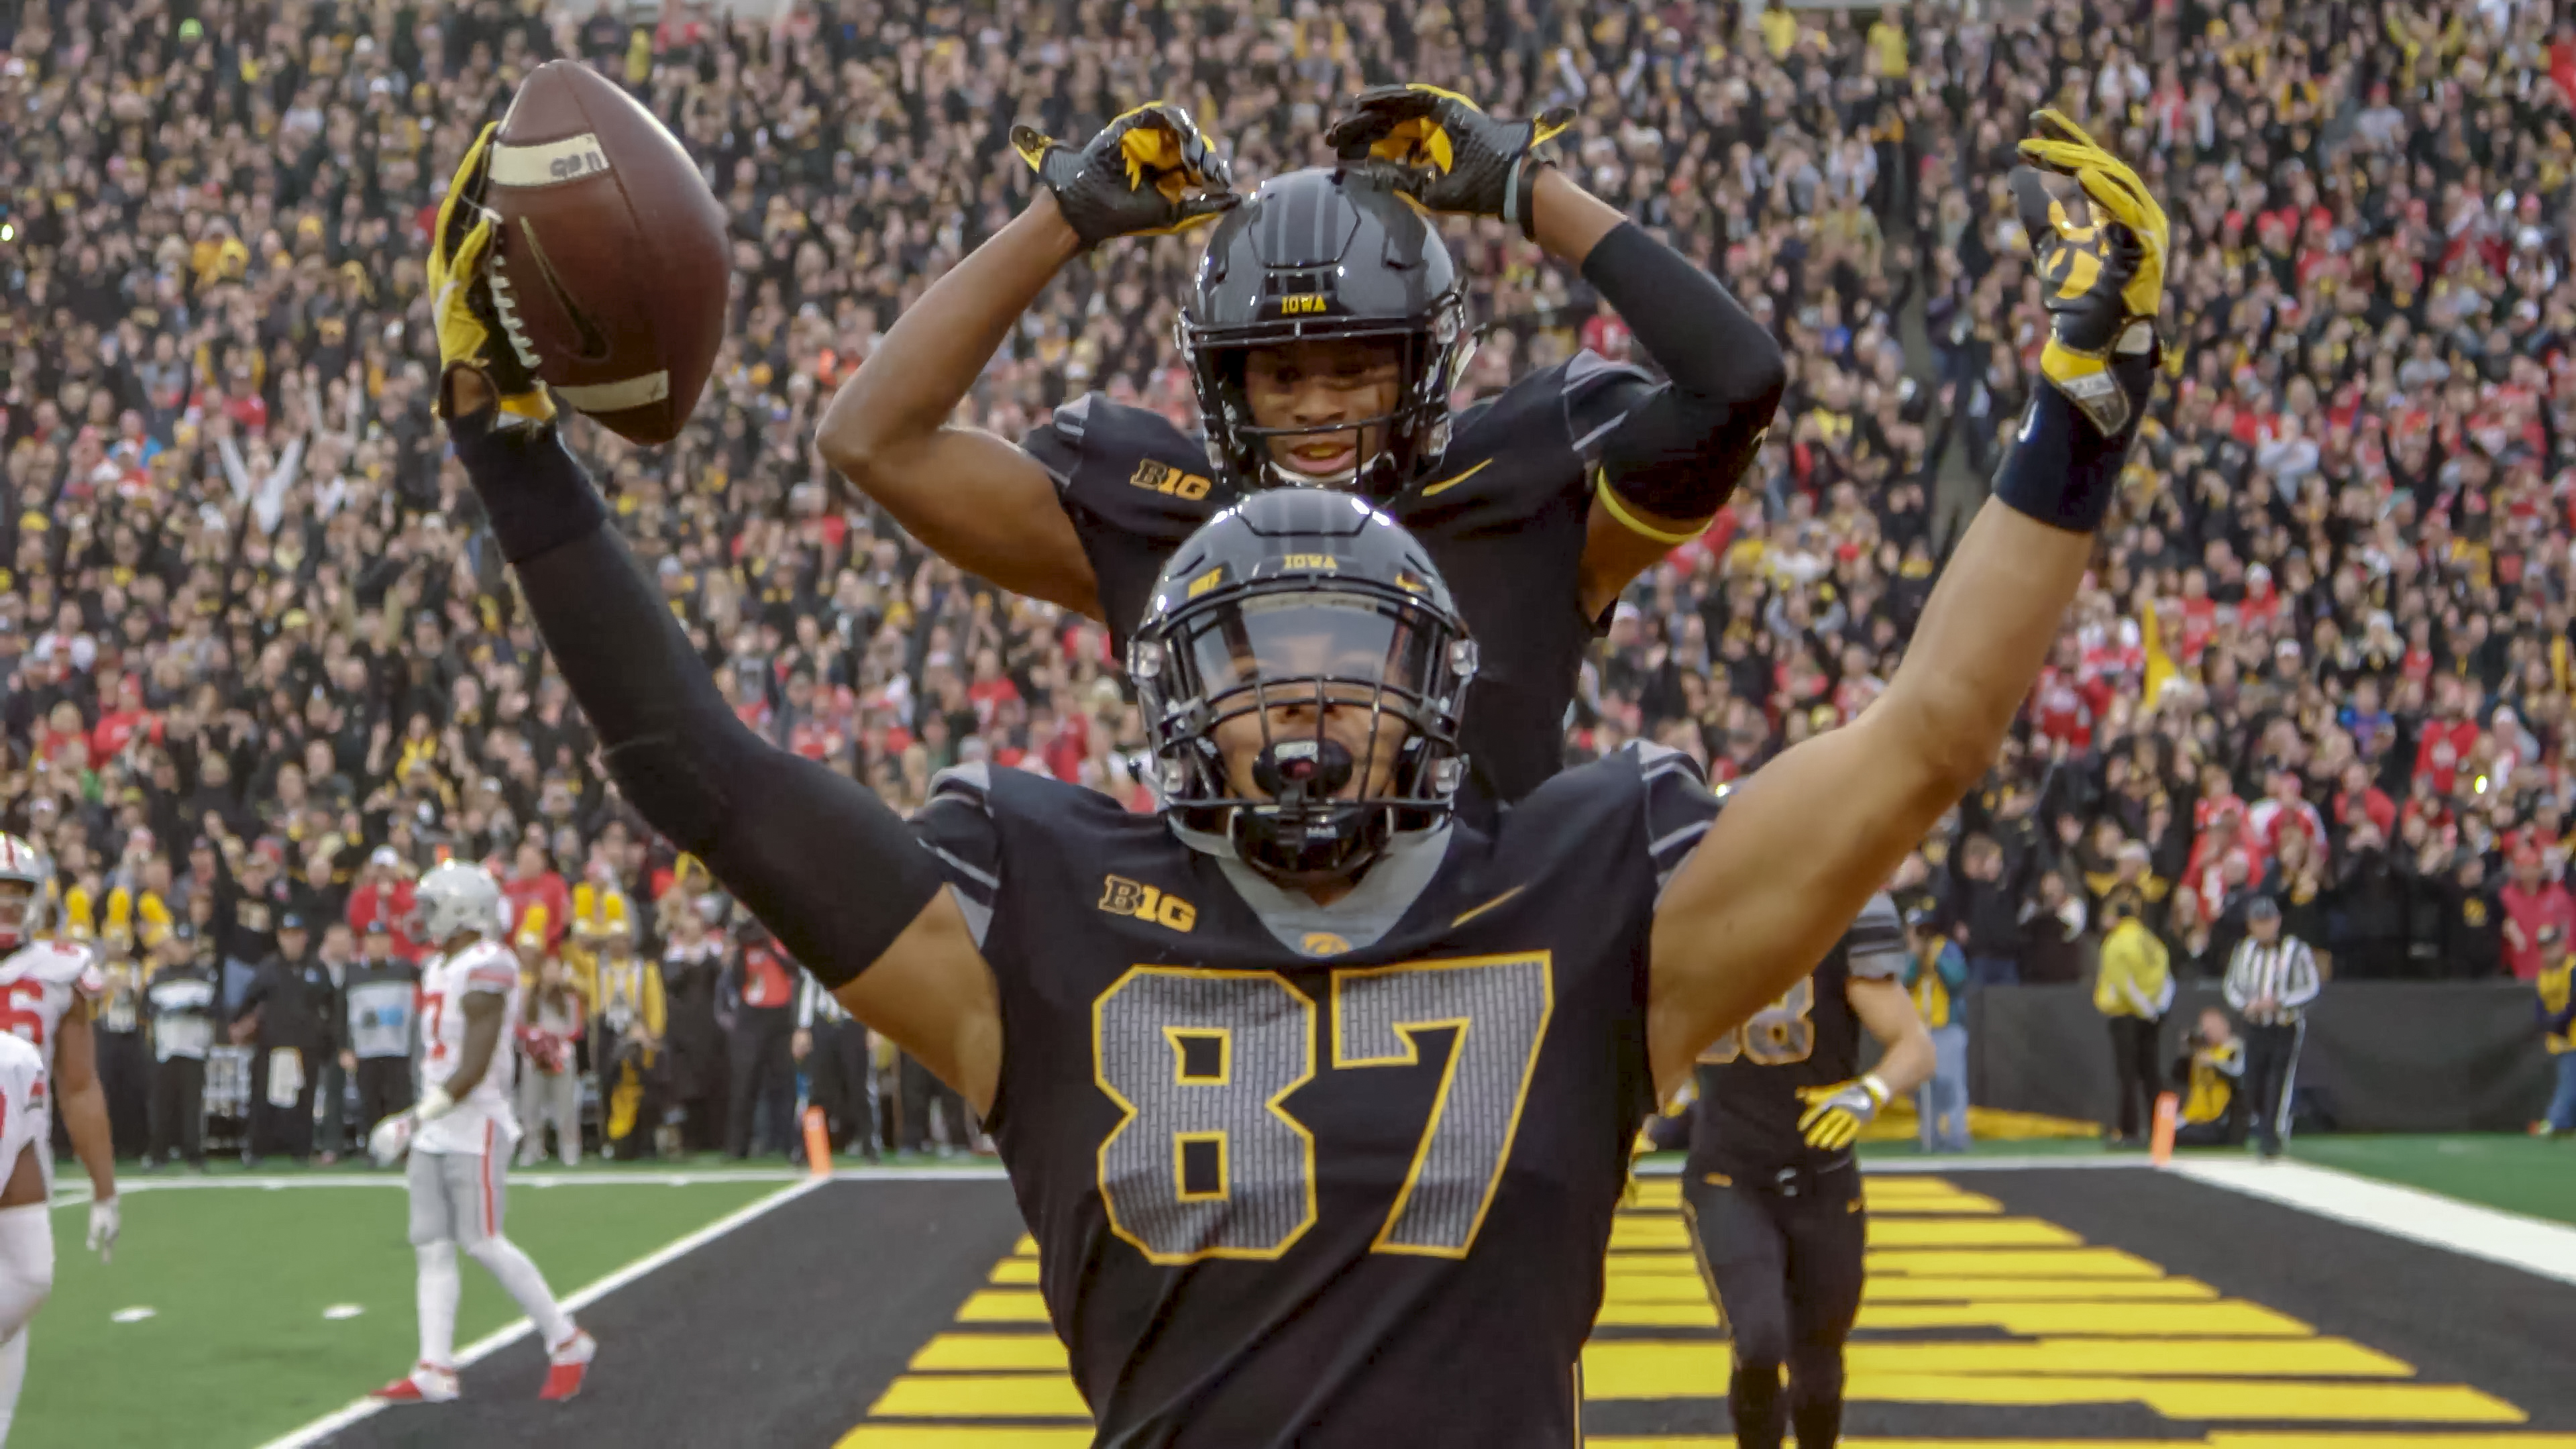 noah fant celebrates a touchdown with a teammate